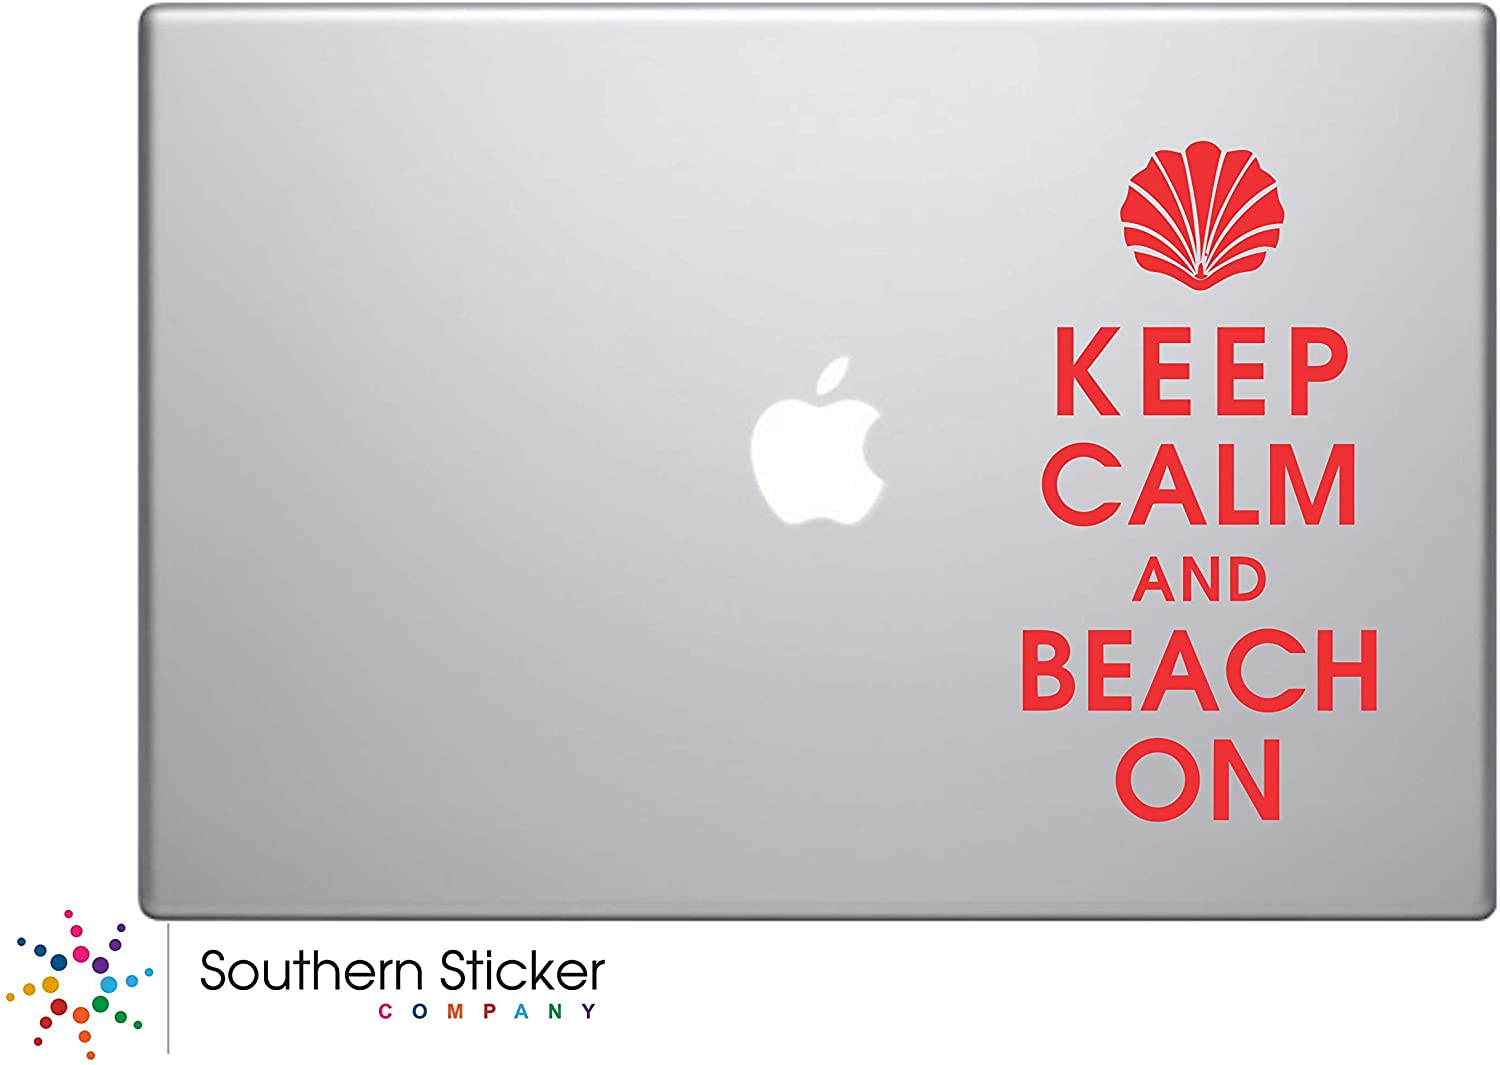 Keep Calm Beach on Vinyl Car Sticker Symbol Silhouette Keypad Track Pad Decal Laptop Skin Ipad Macbook Window Truck Motorcycle (Red)